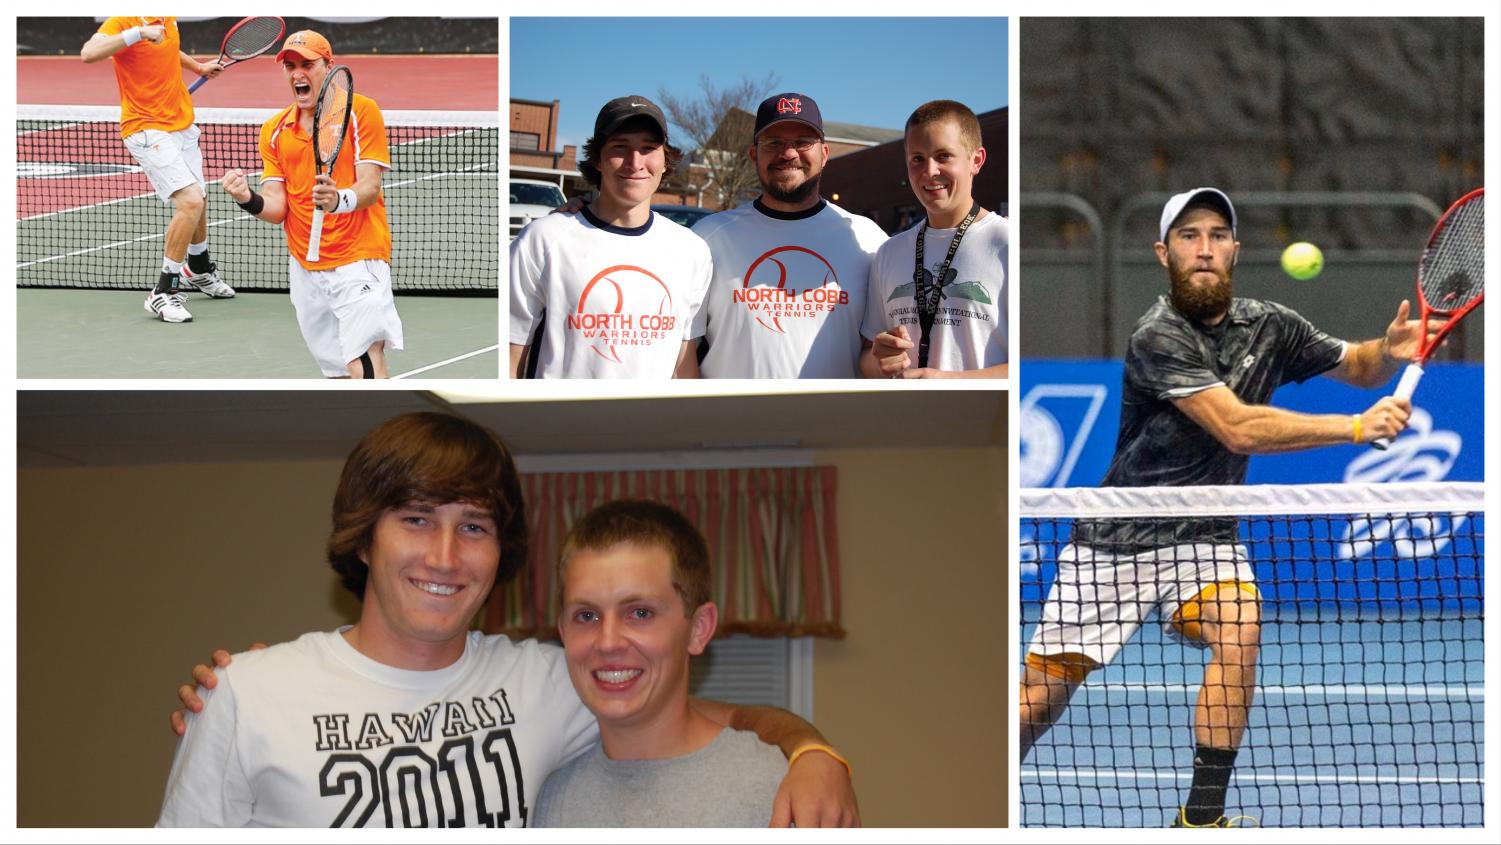 "Hunter Reese, former NC alum and Varsity tennis player, sincerely praises his alma mater for preparing him for life. Reese, pictured with former head tennis coach Bryan Minish and NC teammate Evan Stack (Top middle and bottom left), later played at the University of Tennessee, breaking multiple records (Top left). After playing in the main draw of the U.S. Open, Reese traveled worldwide on the ATP circuit. ""I've traveled all over the world; to almost every country in Europe, many places throughout Asia, spent time in Africa, the Caribbean, everywhere in the US and North America. I try to really stay focused on how fortunate I've been to be able to lead the life that I live,"" Reese said."